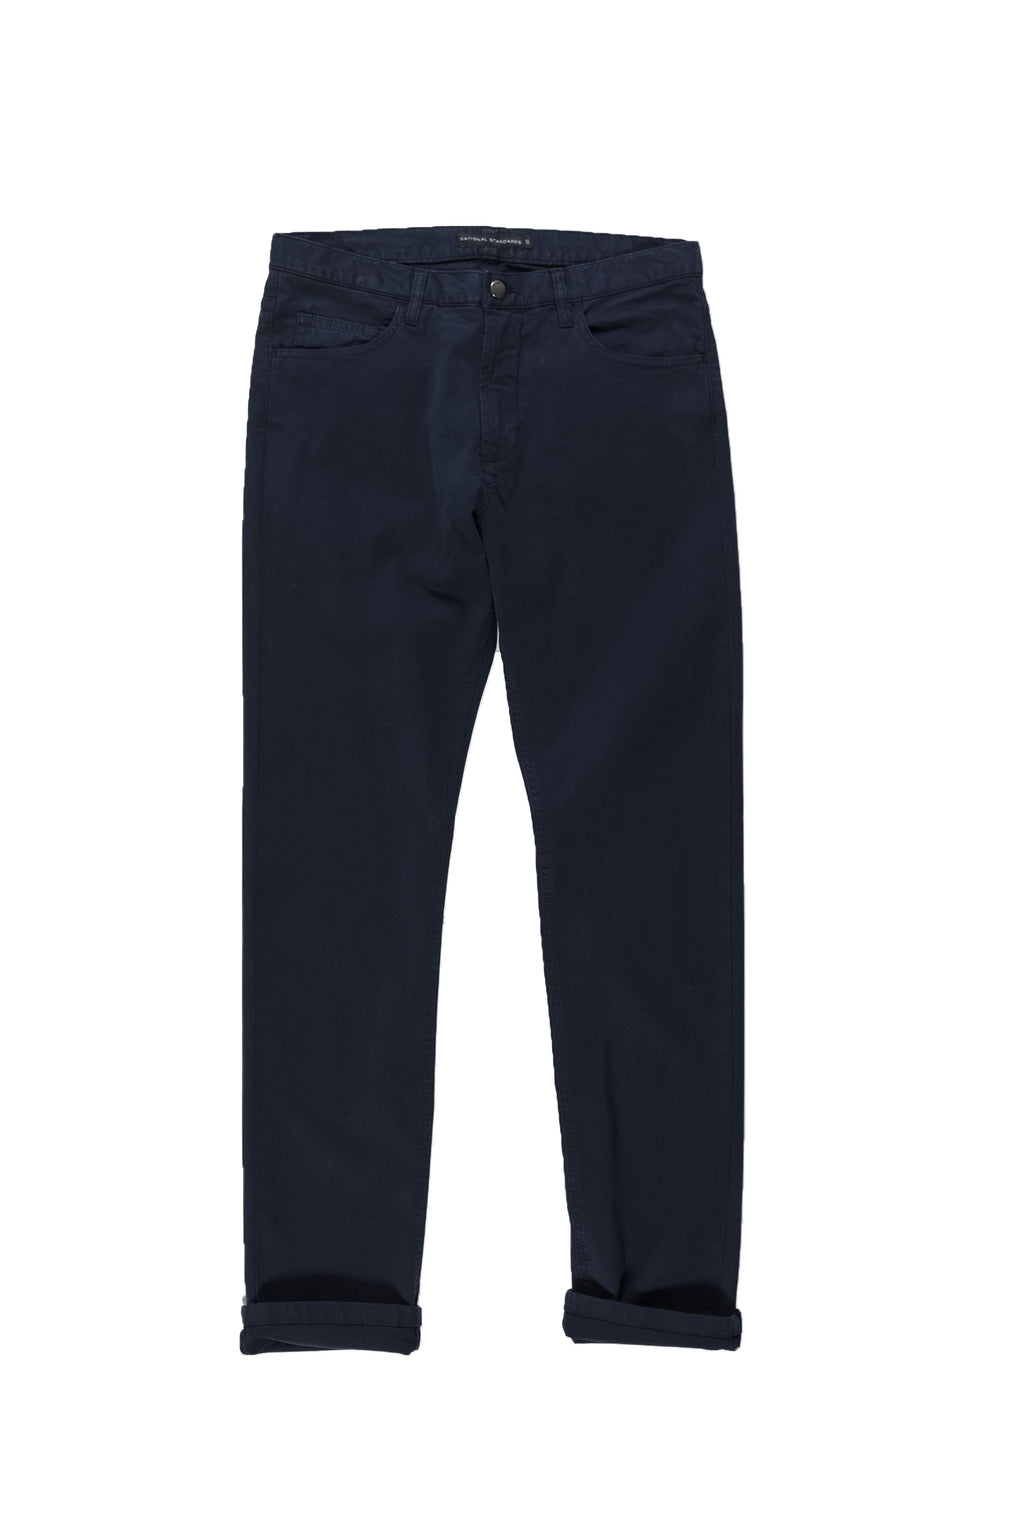 Stretch 5 pocket in Navy NS1049A-12